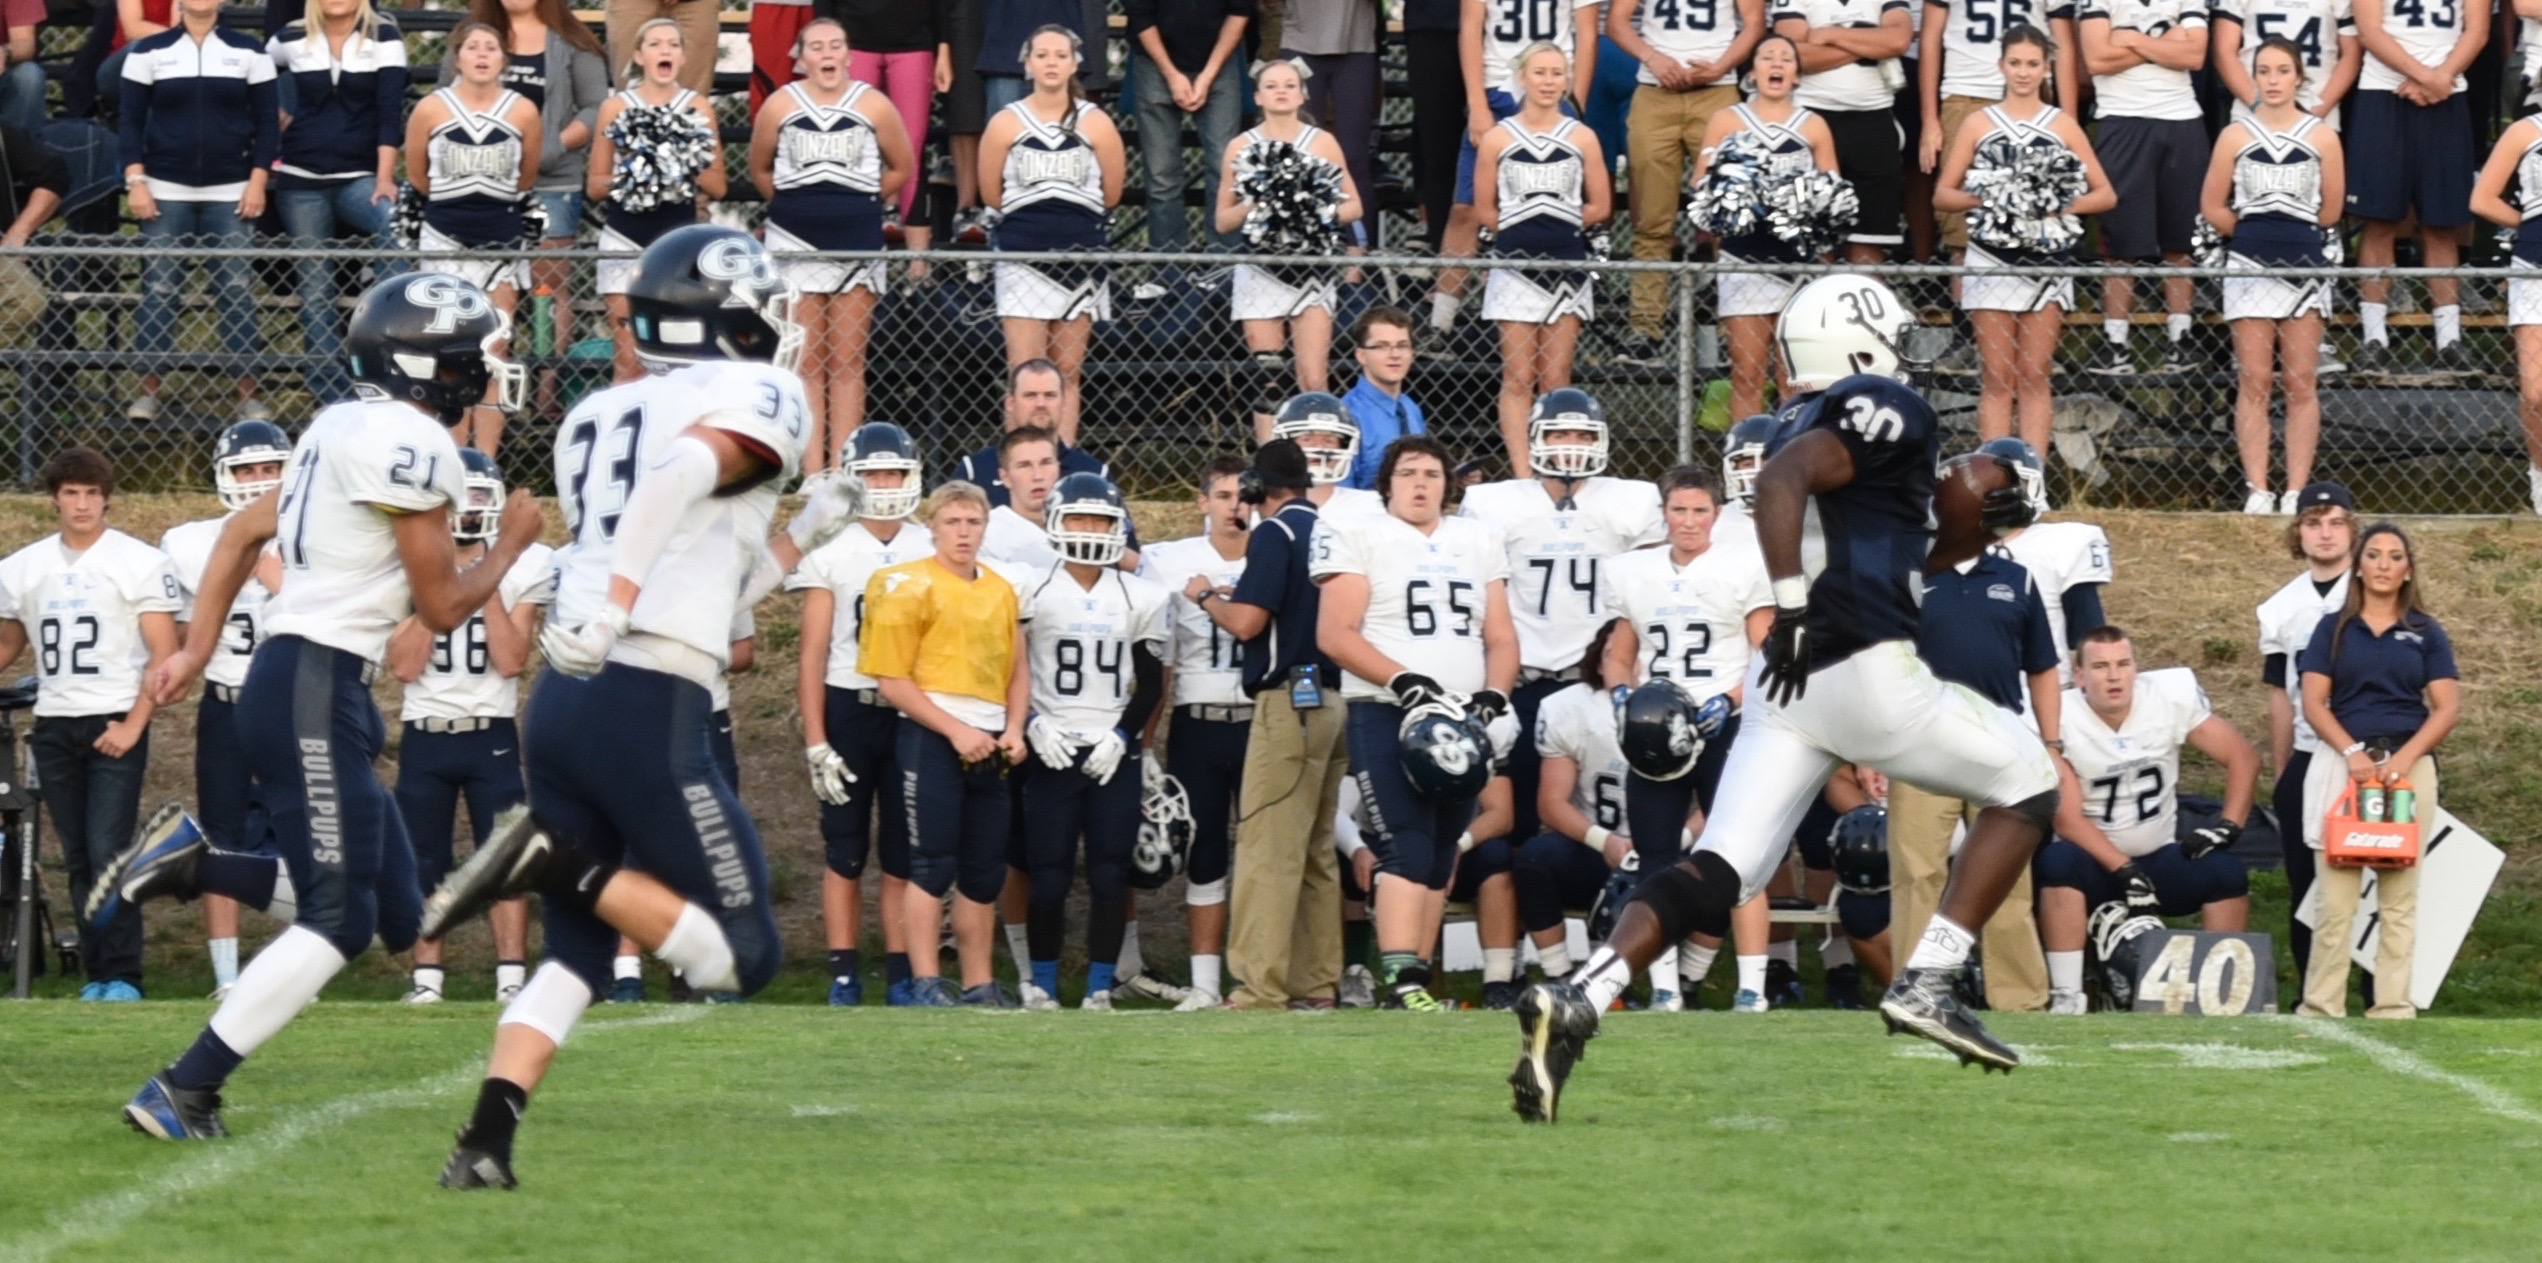 Senior Ahmad Lewis breaks away for a 77 yard touchdown. Photo by Susie Gray